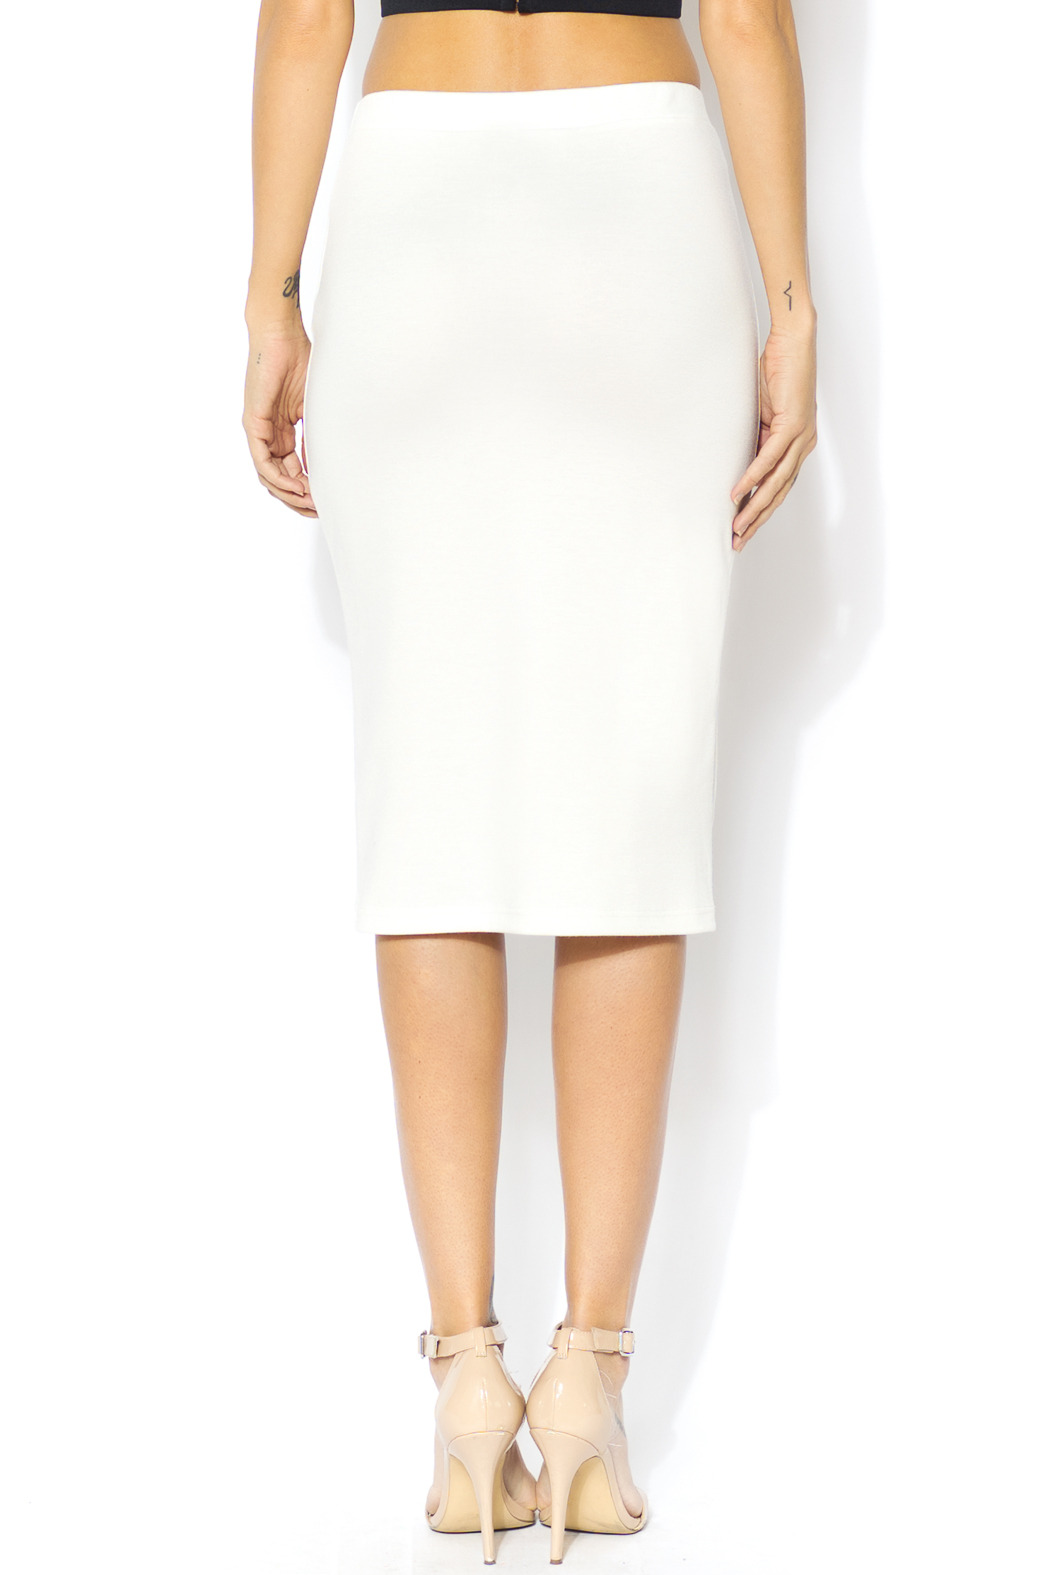 Moa White Pencil Skirt from Massachusetts by Black Box Boutique ...